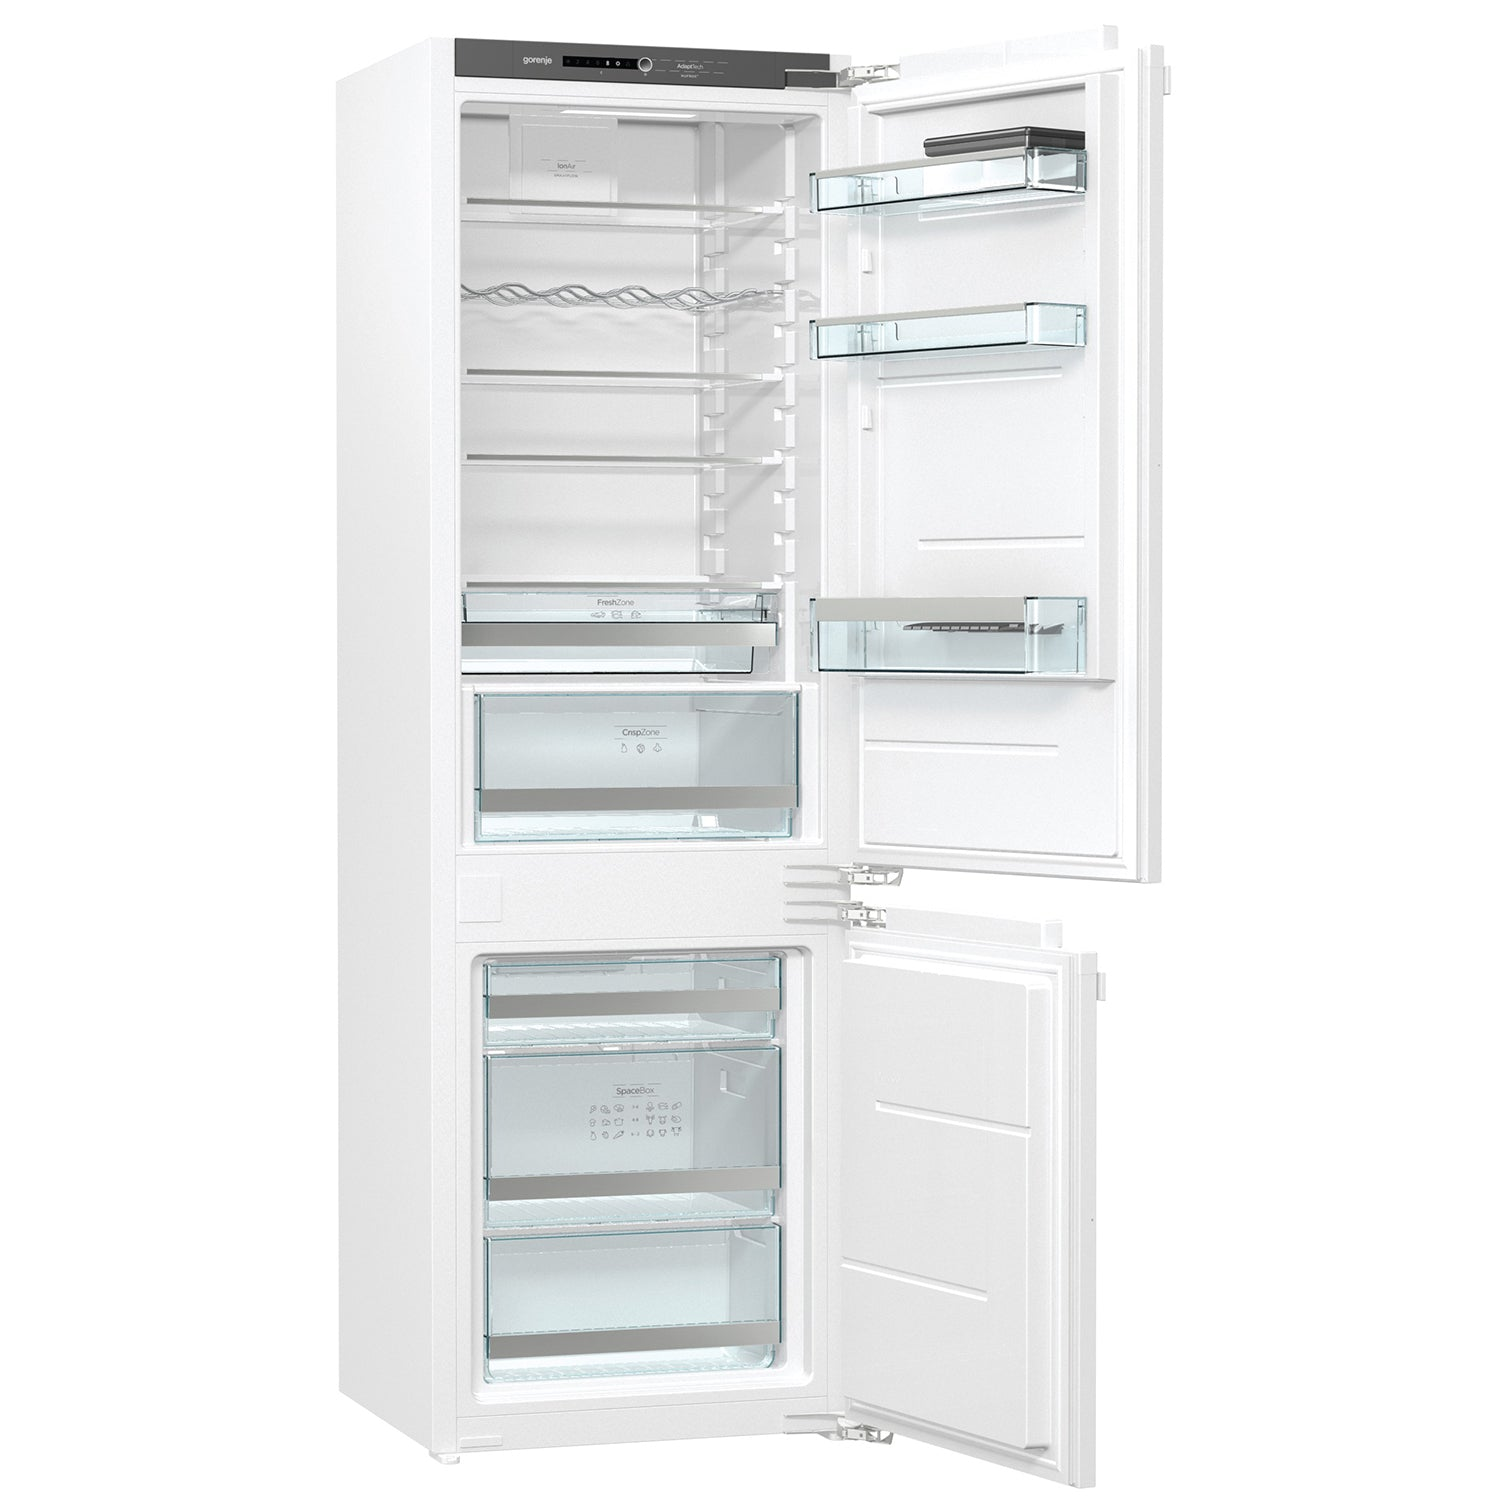 Gorenje 248L(8.8cu.ft) Built-in Refrigerator with Freezer in White